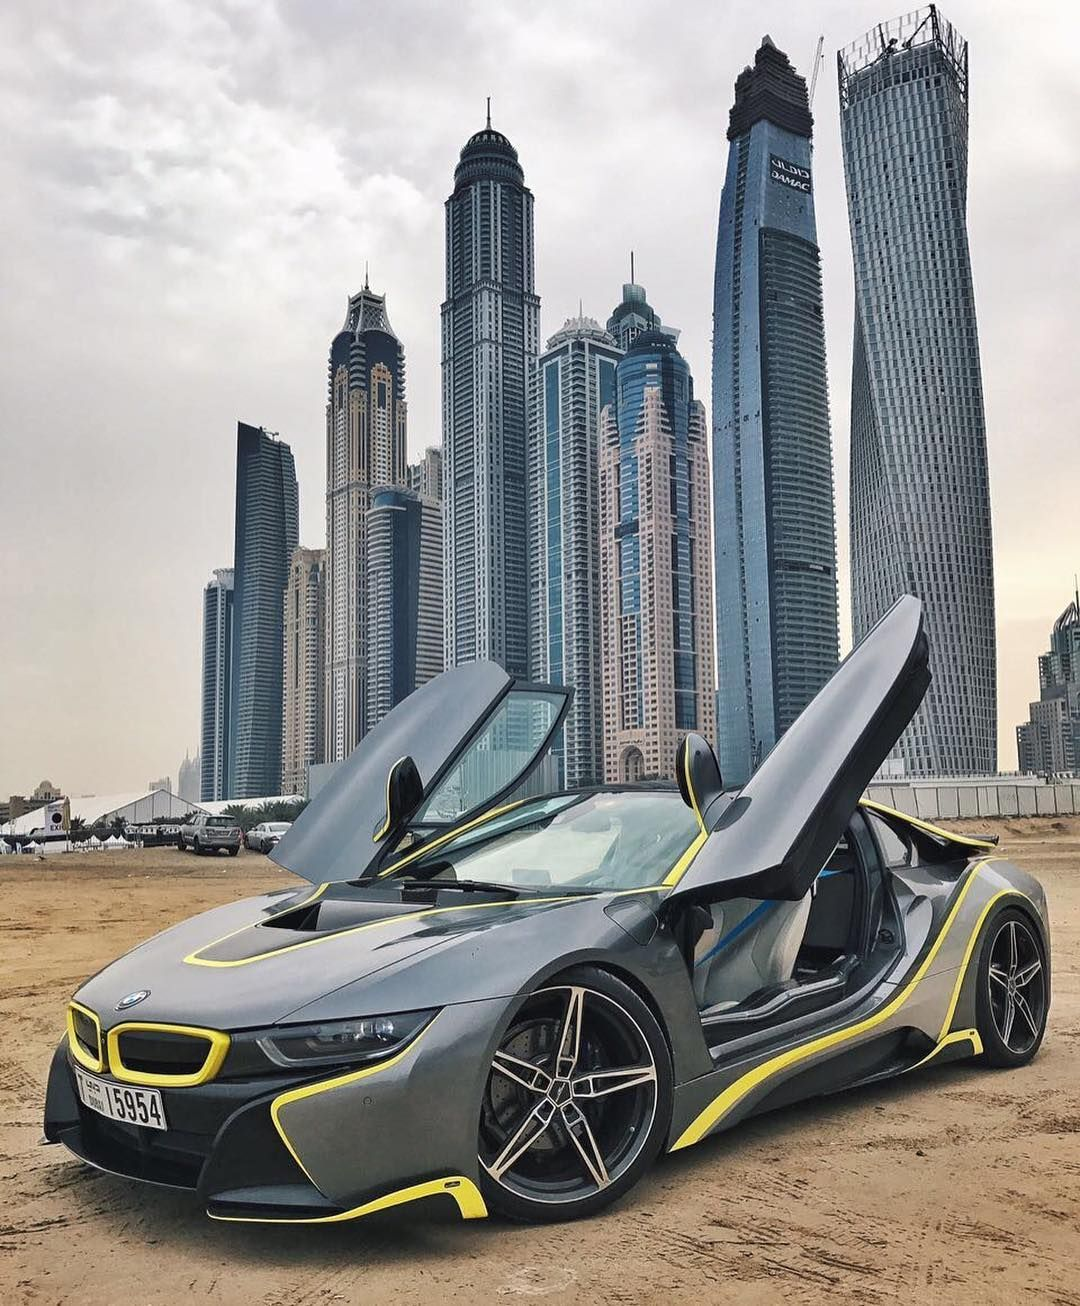 Bmw I8 In Dubai Capsa99 Agen Poker Domino Bet Texas Poker Dewa